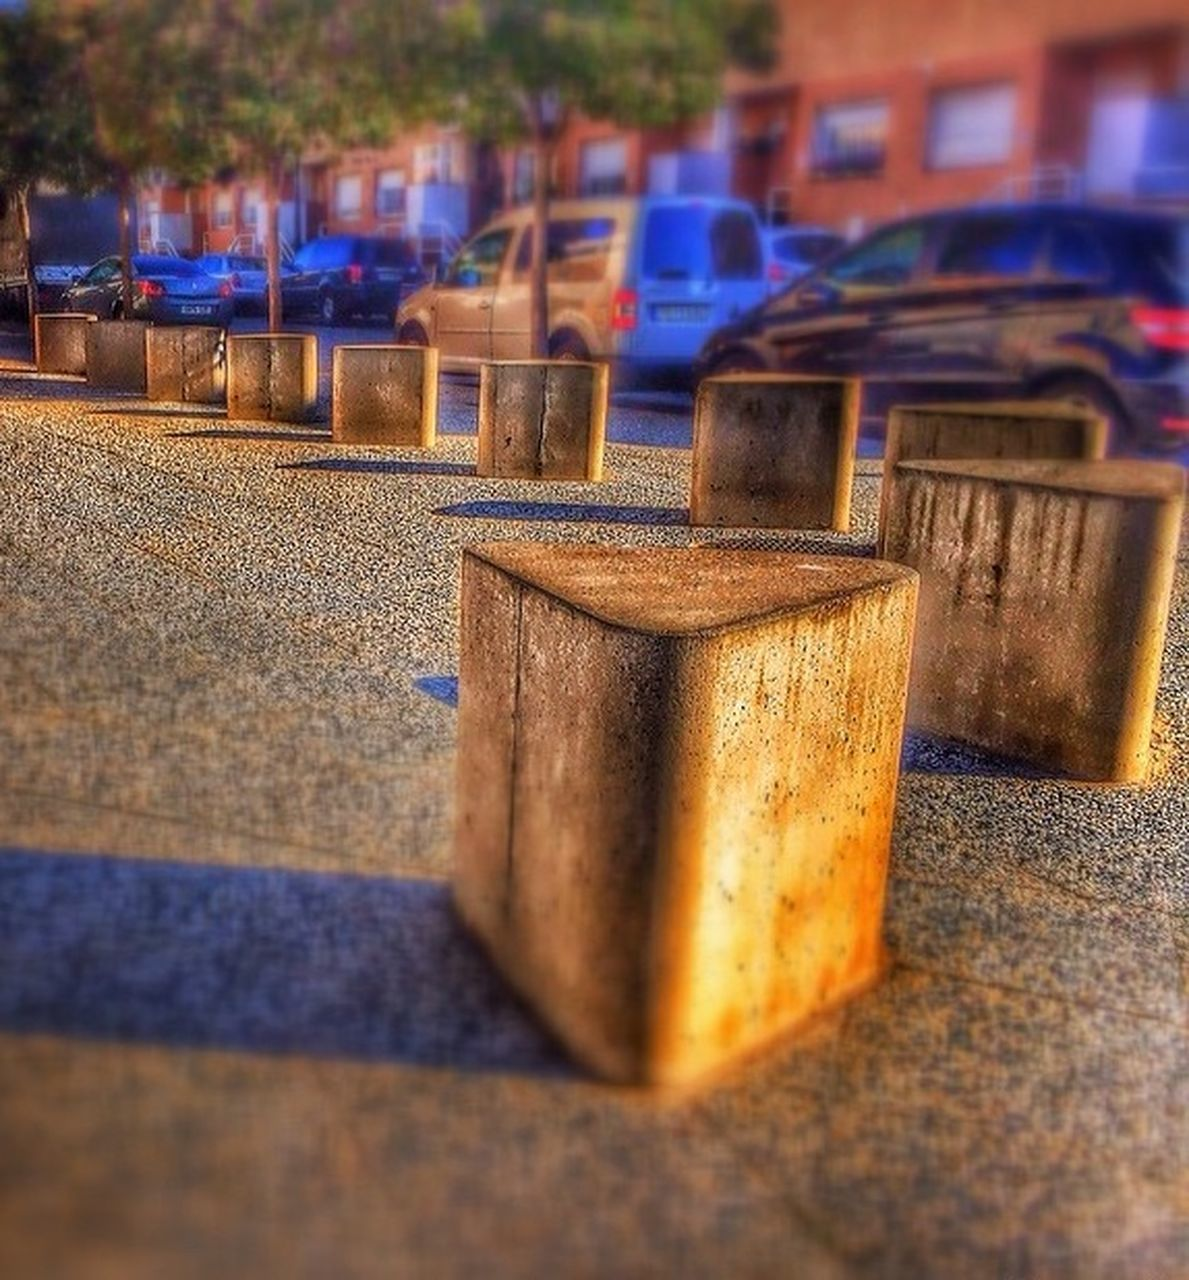 in a row, no people, selective focus, table, outdoors, close-up, day